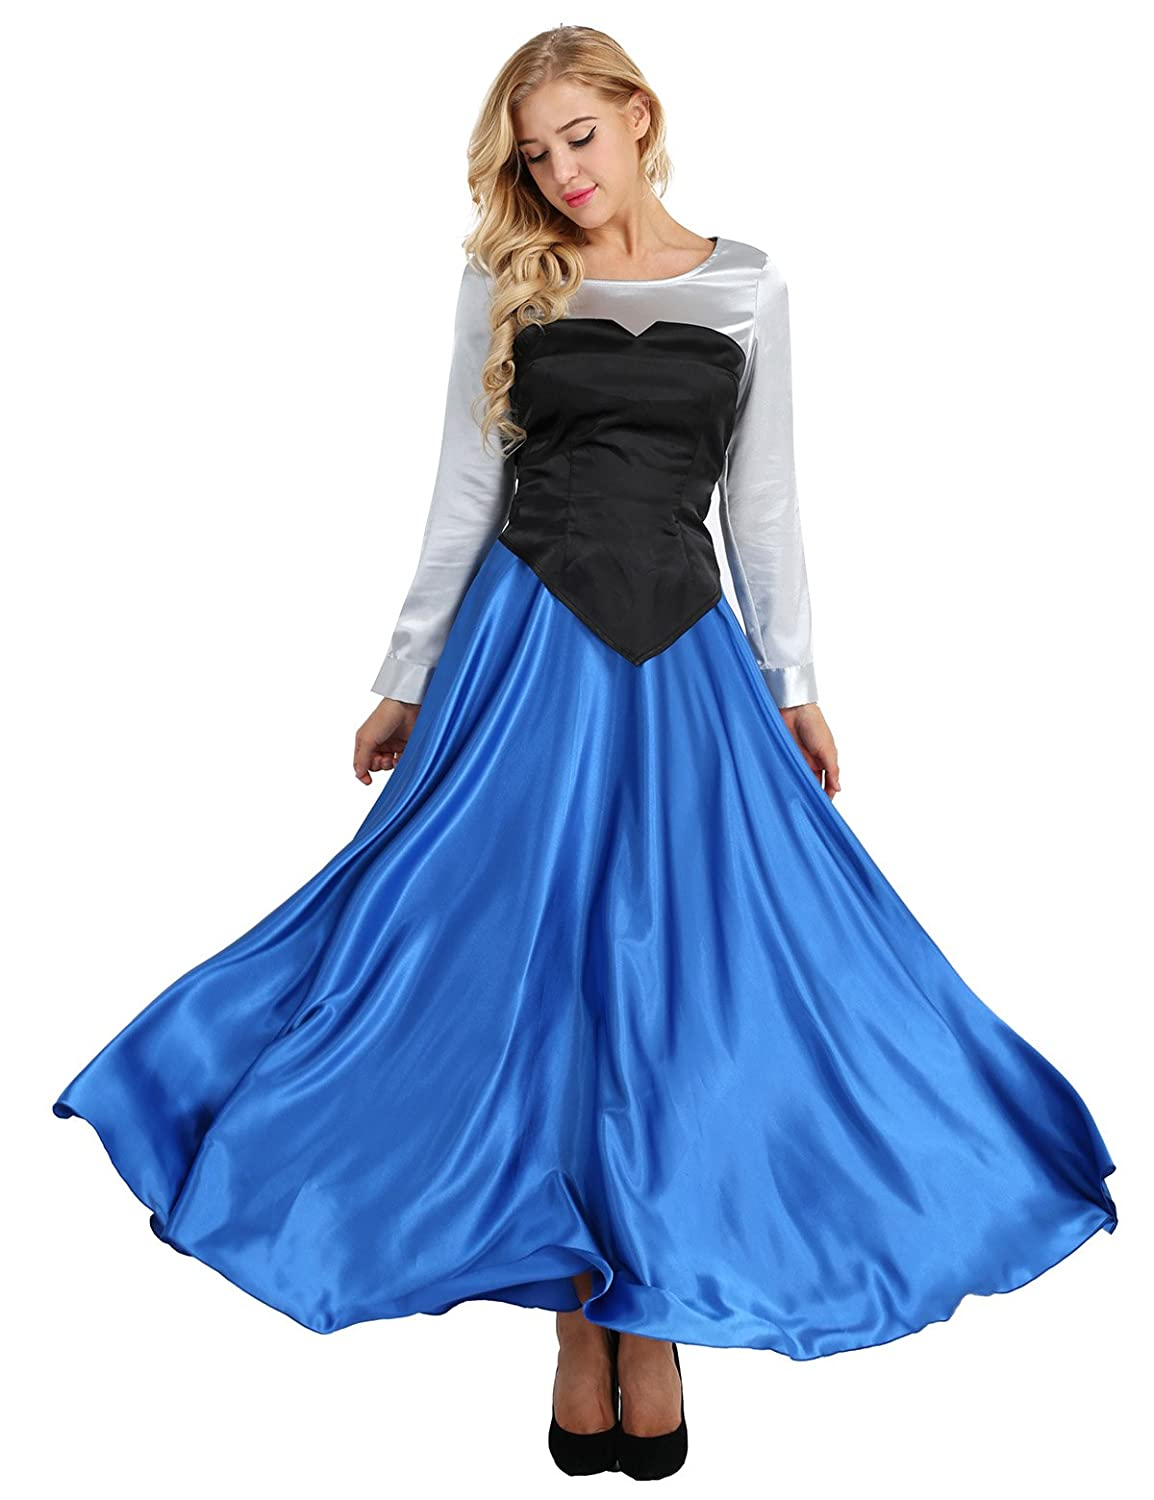 FEESHOW Adult 3 Pieces Little Mermaid Ariel Cosplay Costume Princess Party Dress Ball Gown Outfit